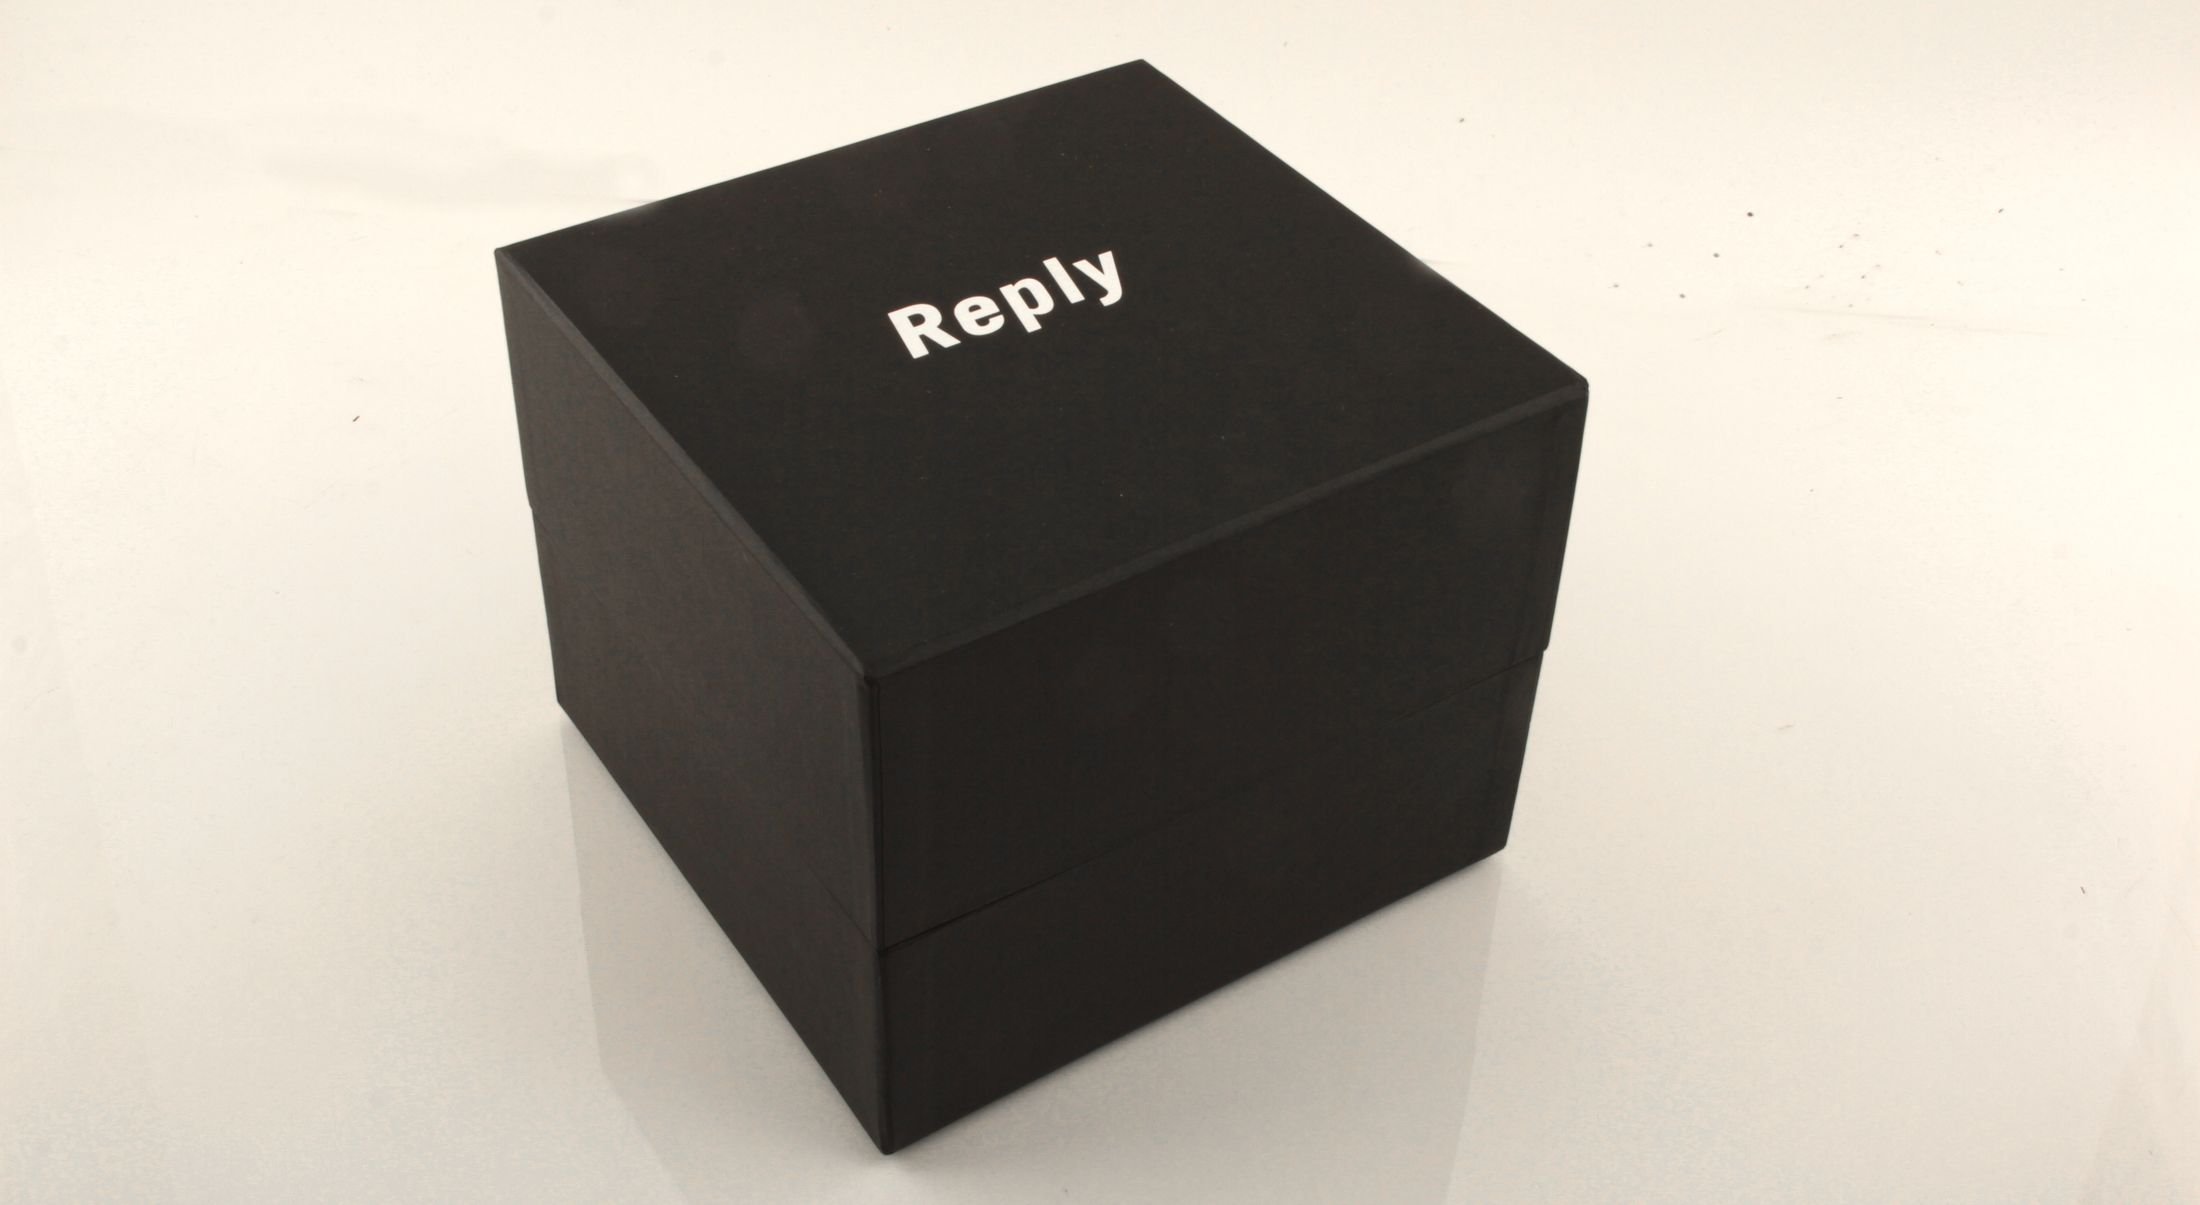 Trofeo Reply Packaging cubo ridotto